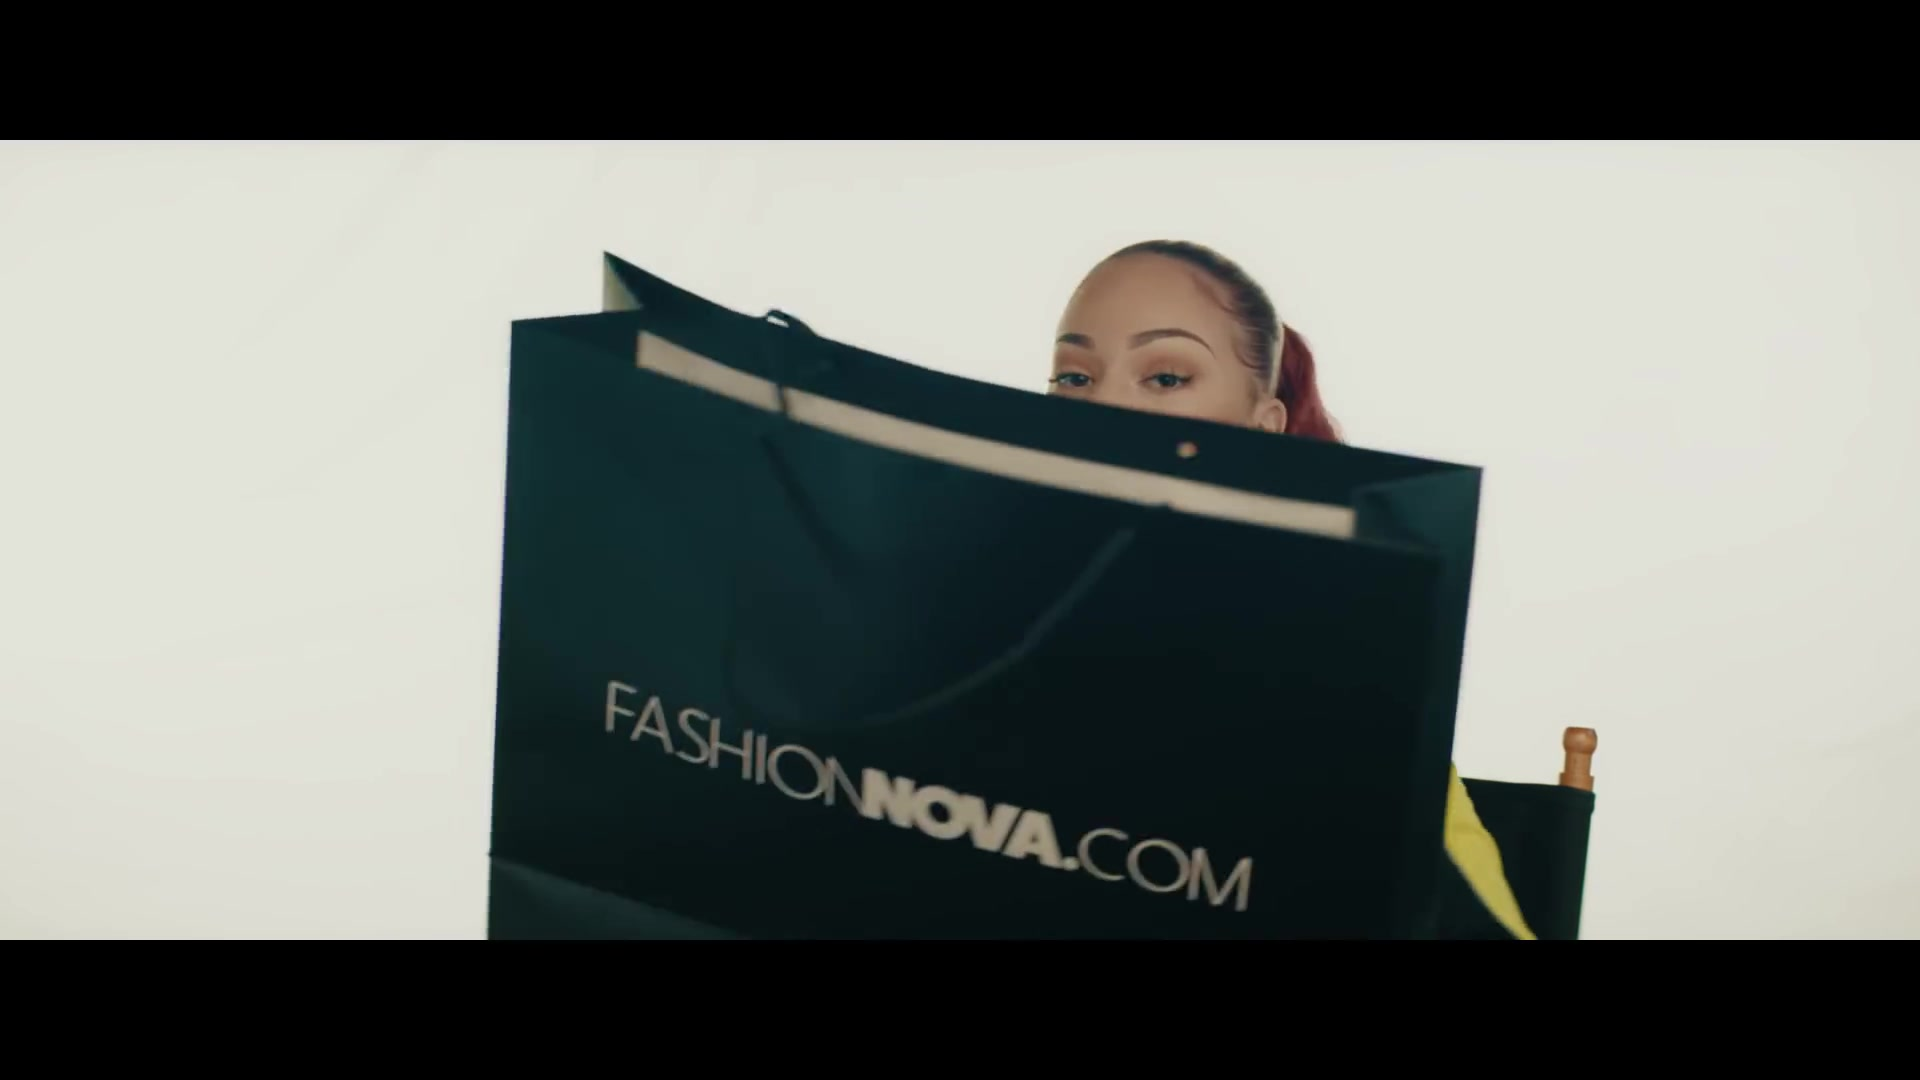 FashionNova Online Store Black Paper Bag Held by Bhad Bhabie